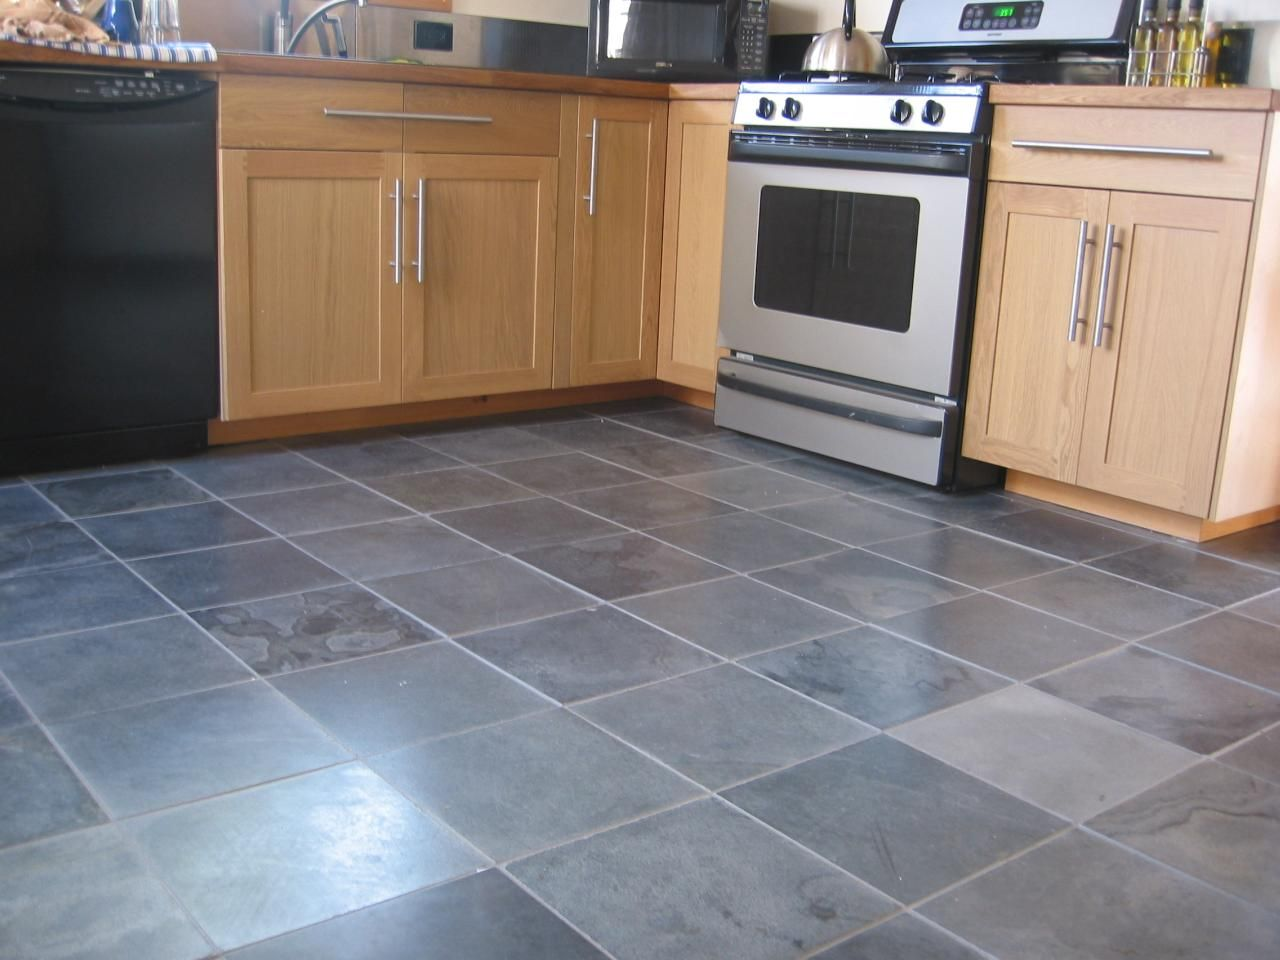 Porcelain Tile Flooring For Kitchen 1000 Images About Tile Floors On Pinterest Wild Rice Tile And